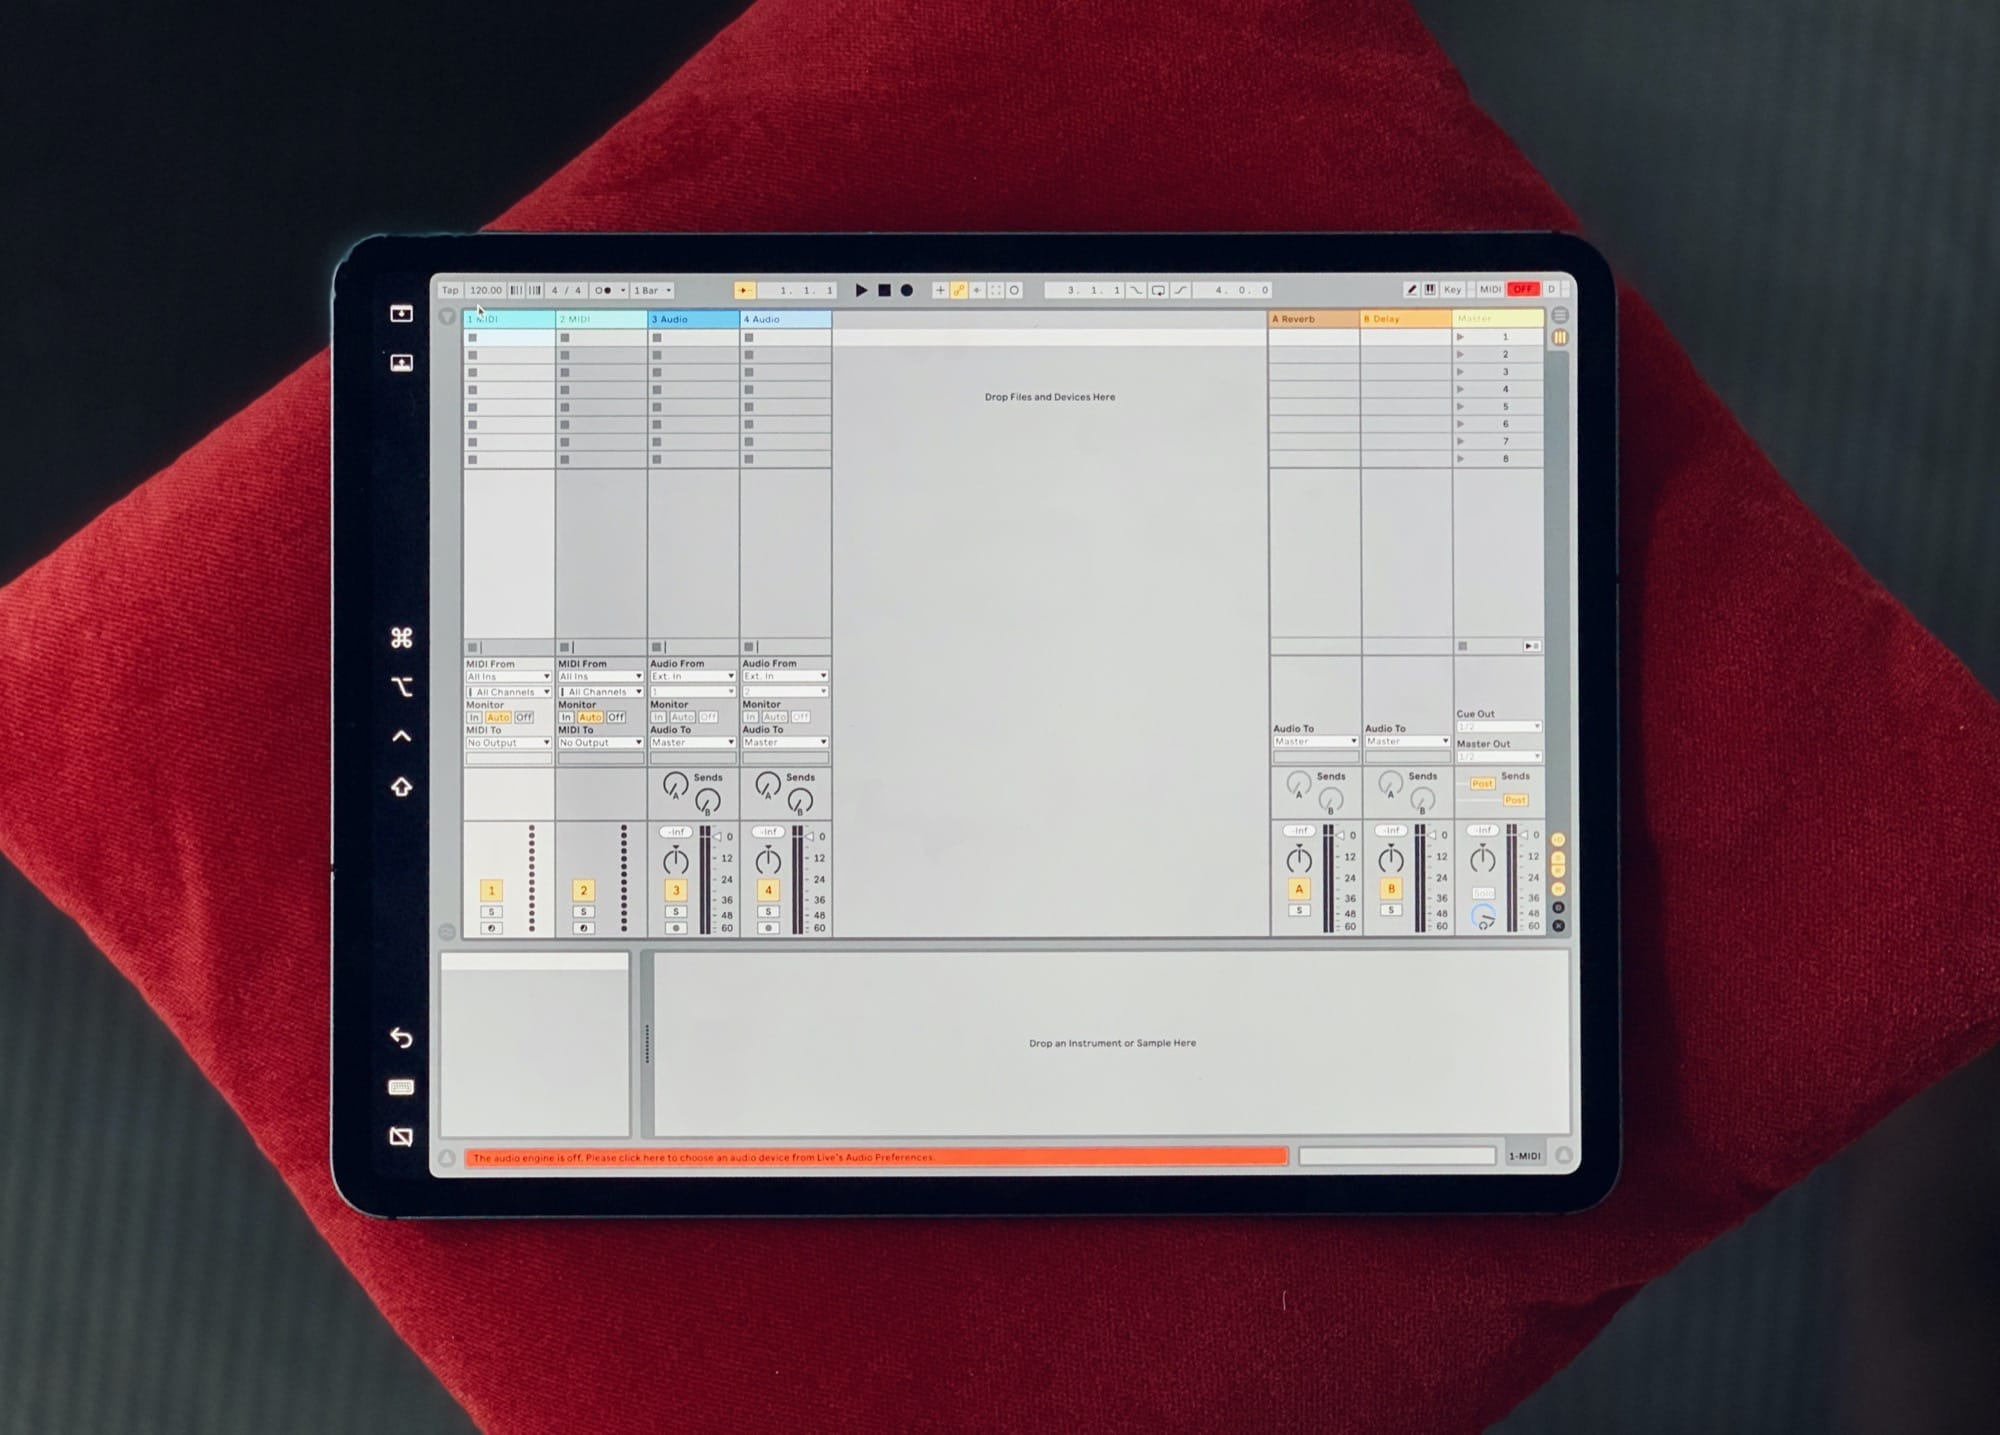 Ableton Live on the iPad